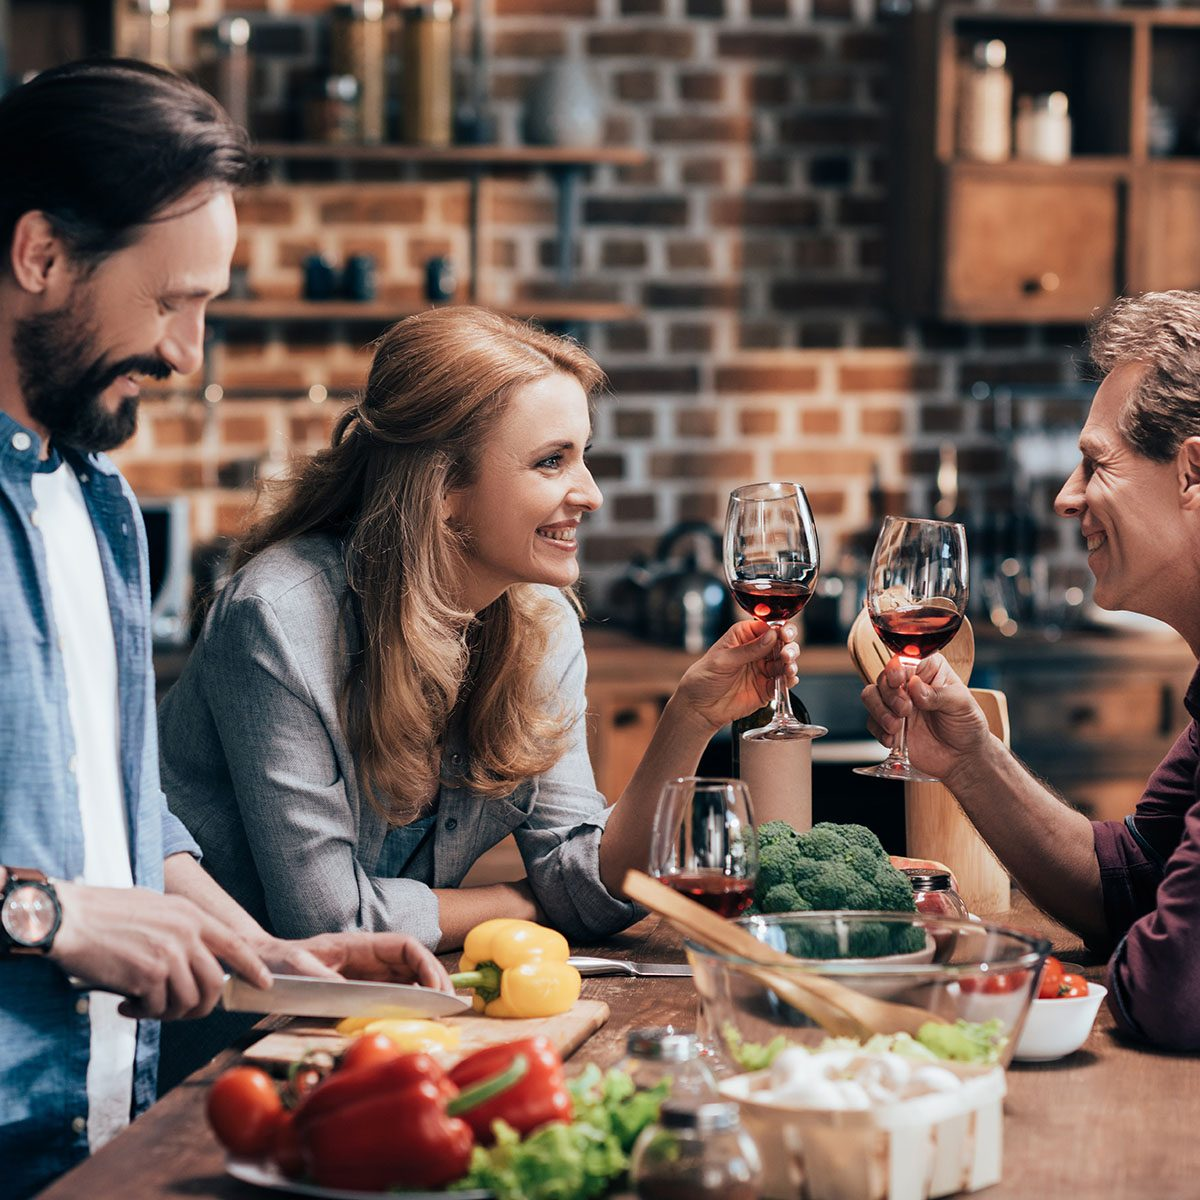 happy friends drinking wine and smiling each other while man cutting vegetables for salad